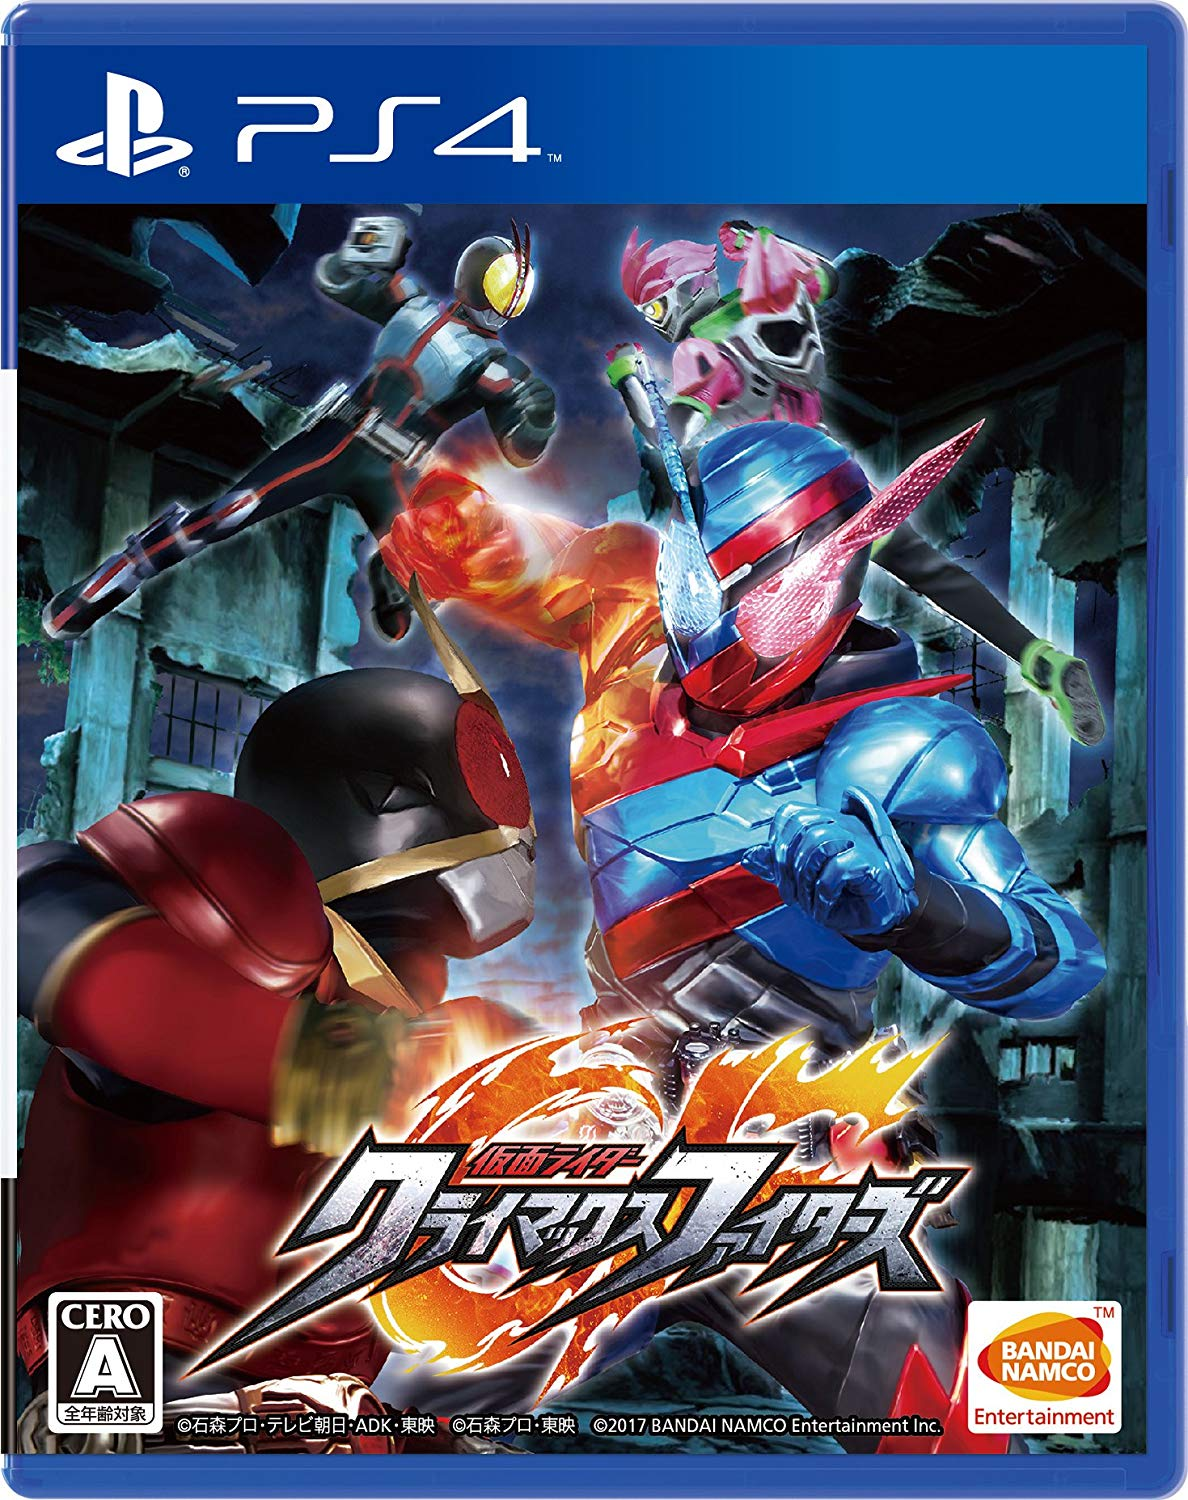 PS4 Kamen Rider: Climax Fighters (PlayStation 4) JPN